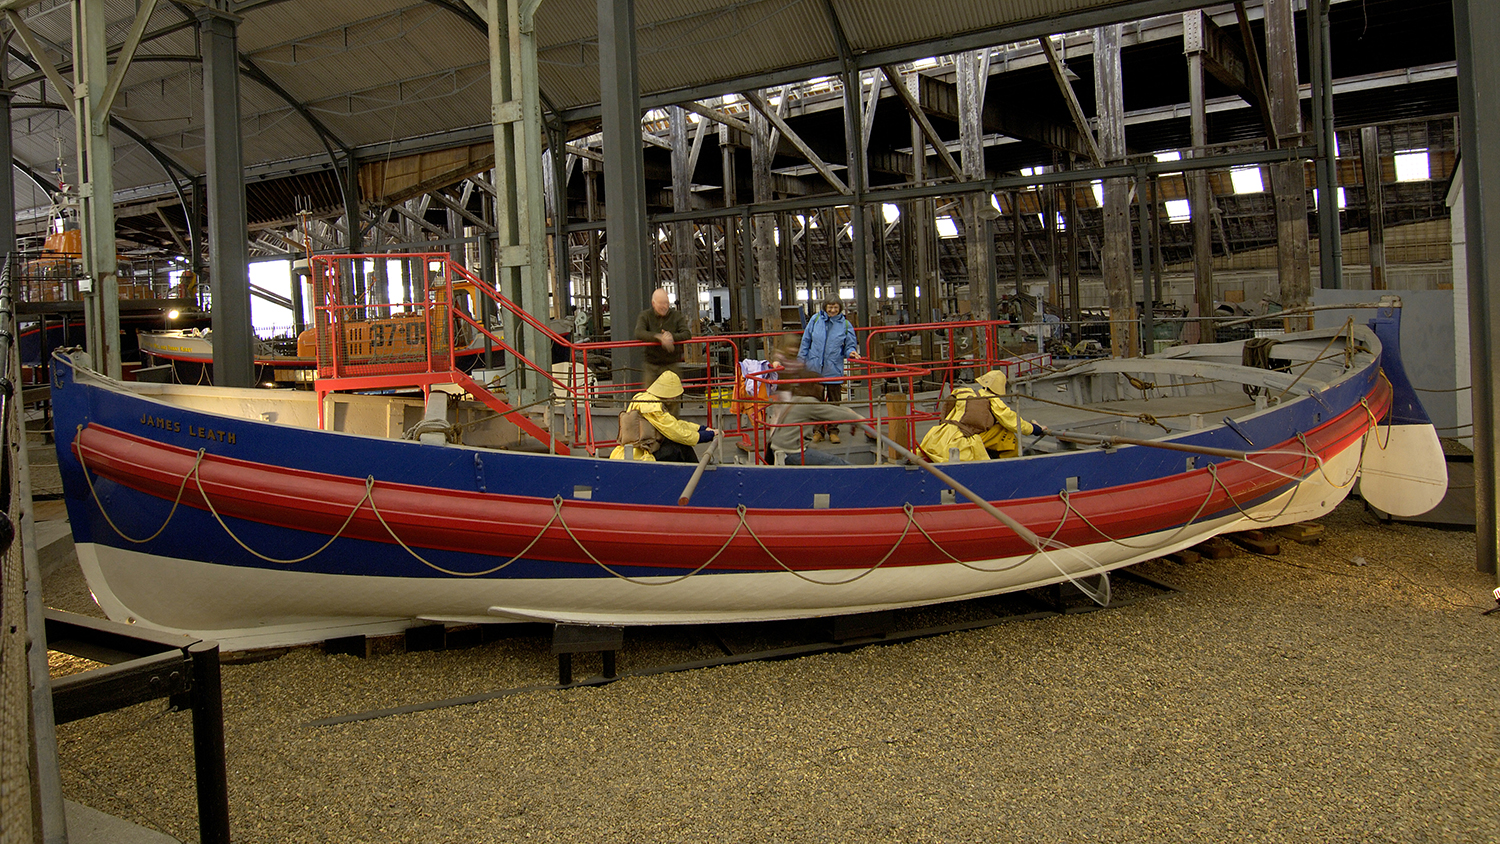 James Leath lifeboat at The Historic Lifeboat Collection in Chatham, Kent.